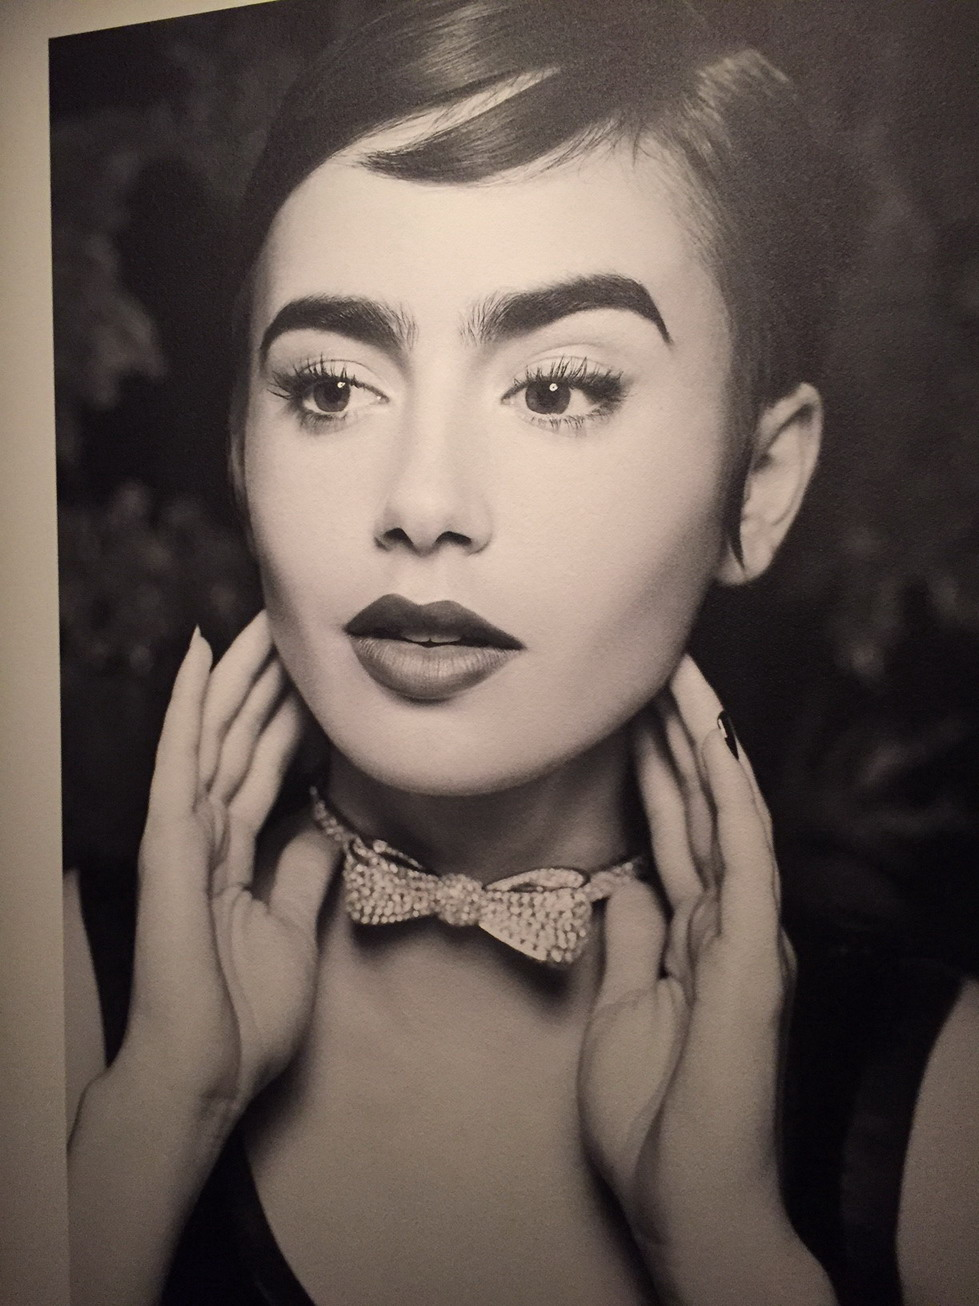 Lily Collins Chanel diamond bow necklace Saatchi exhibtion Oct 2015